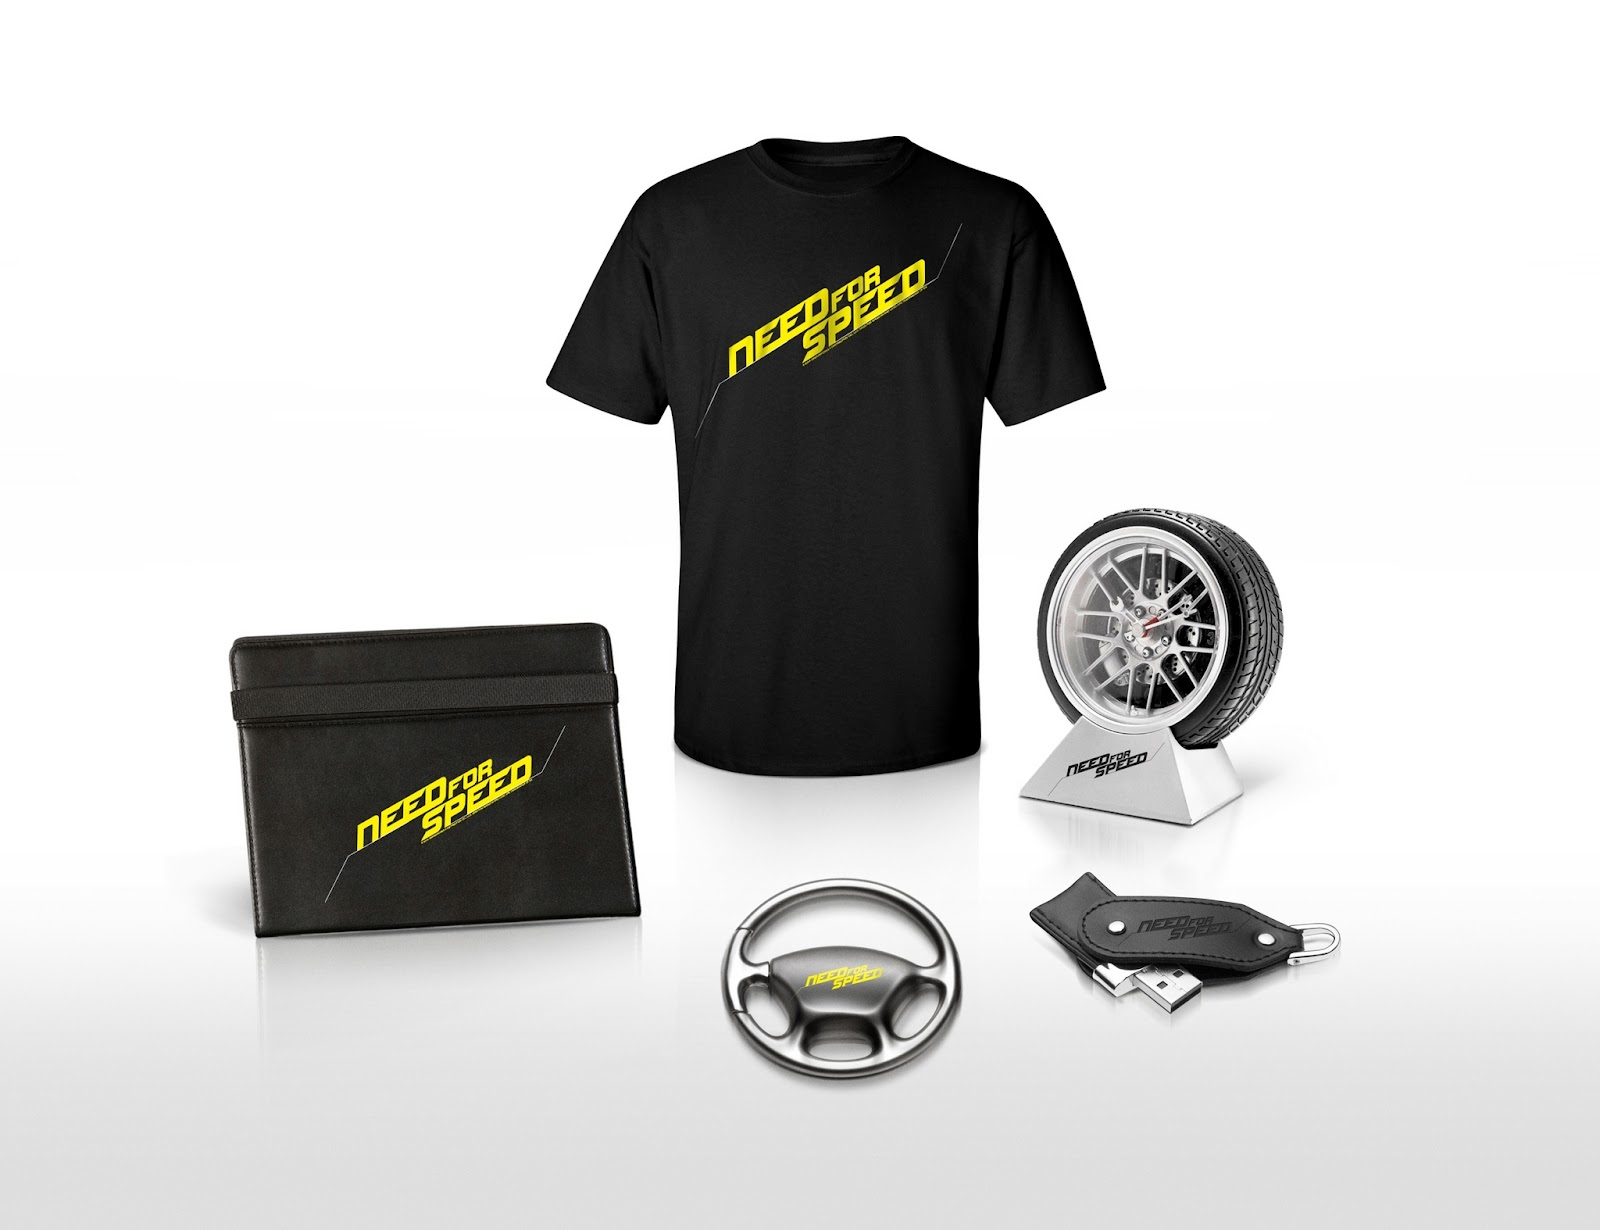 Need for Speed goody bag competition